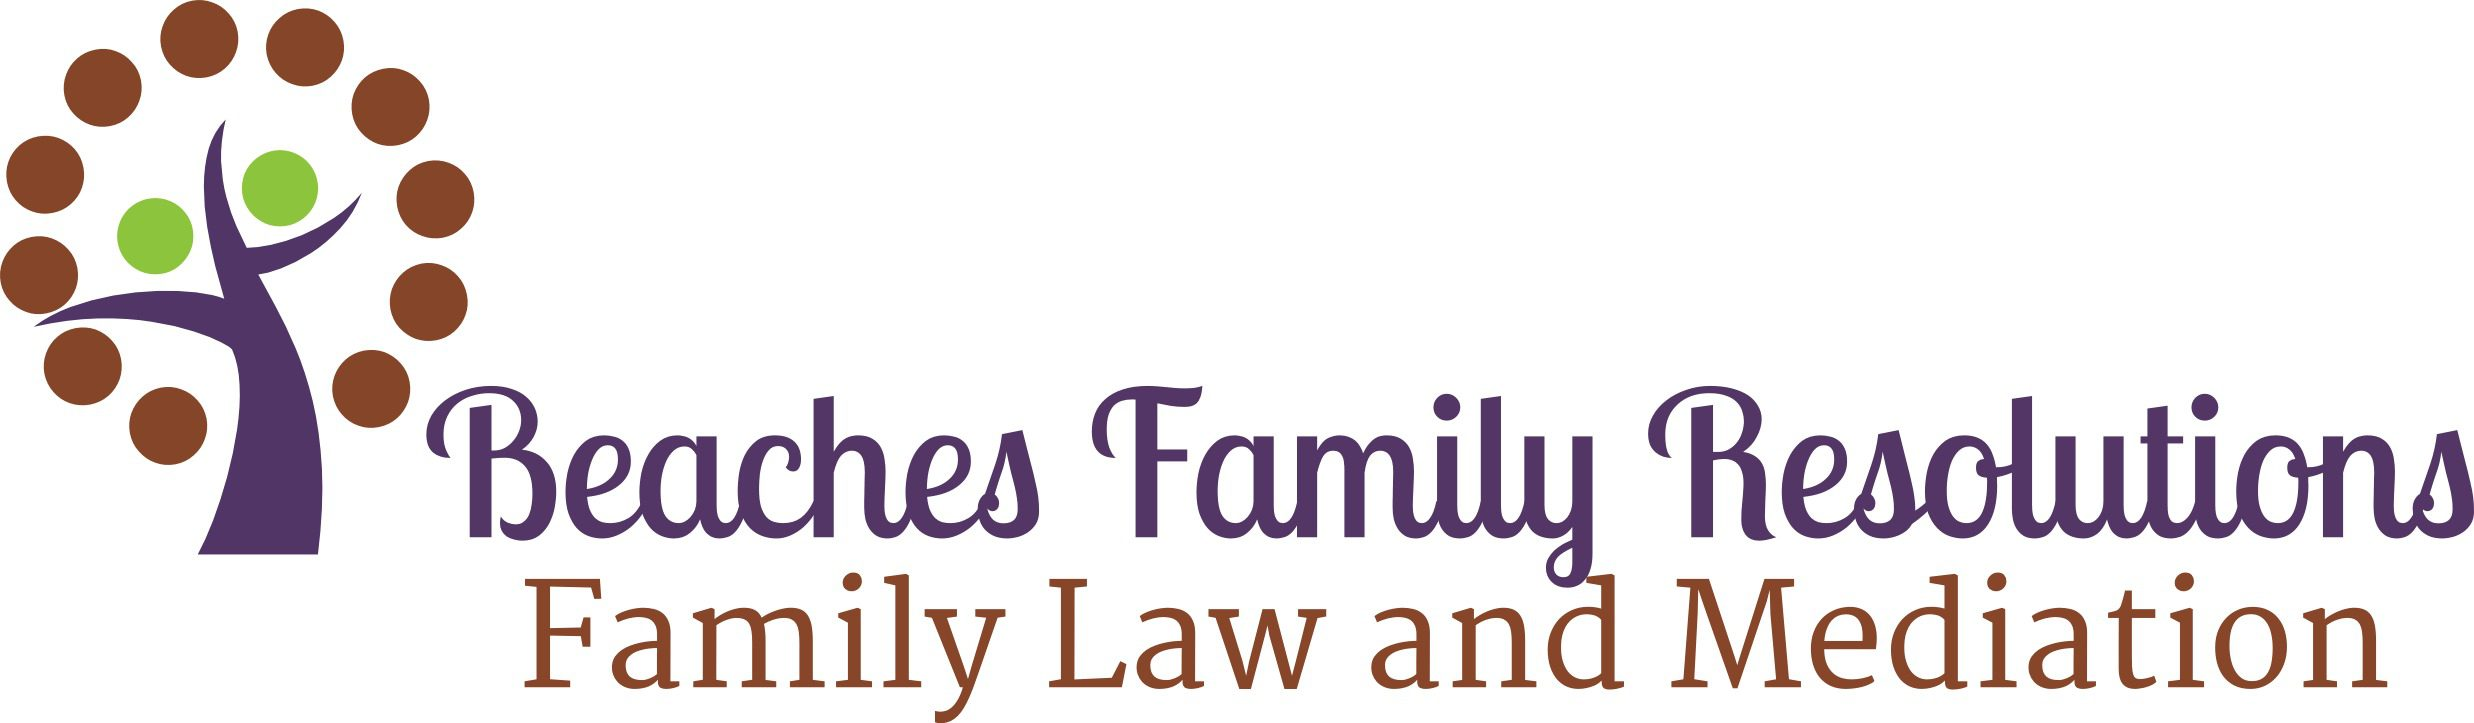 Divorce, Child Support, Child Custody, and Paternity Litigation, Mediation and Parenting Coordination